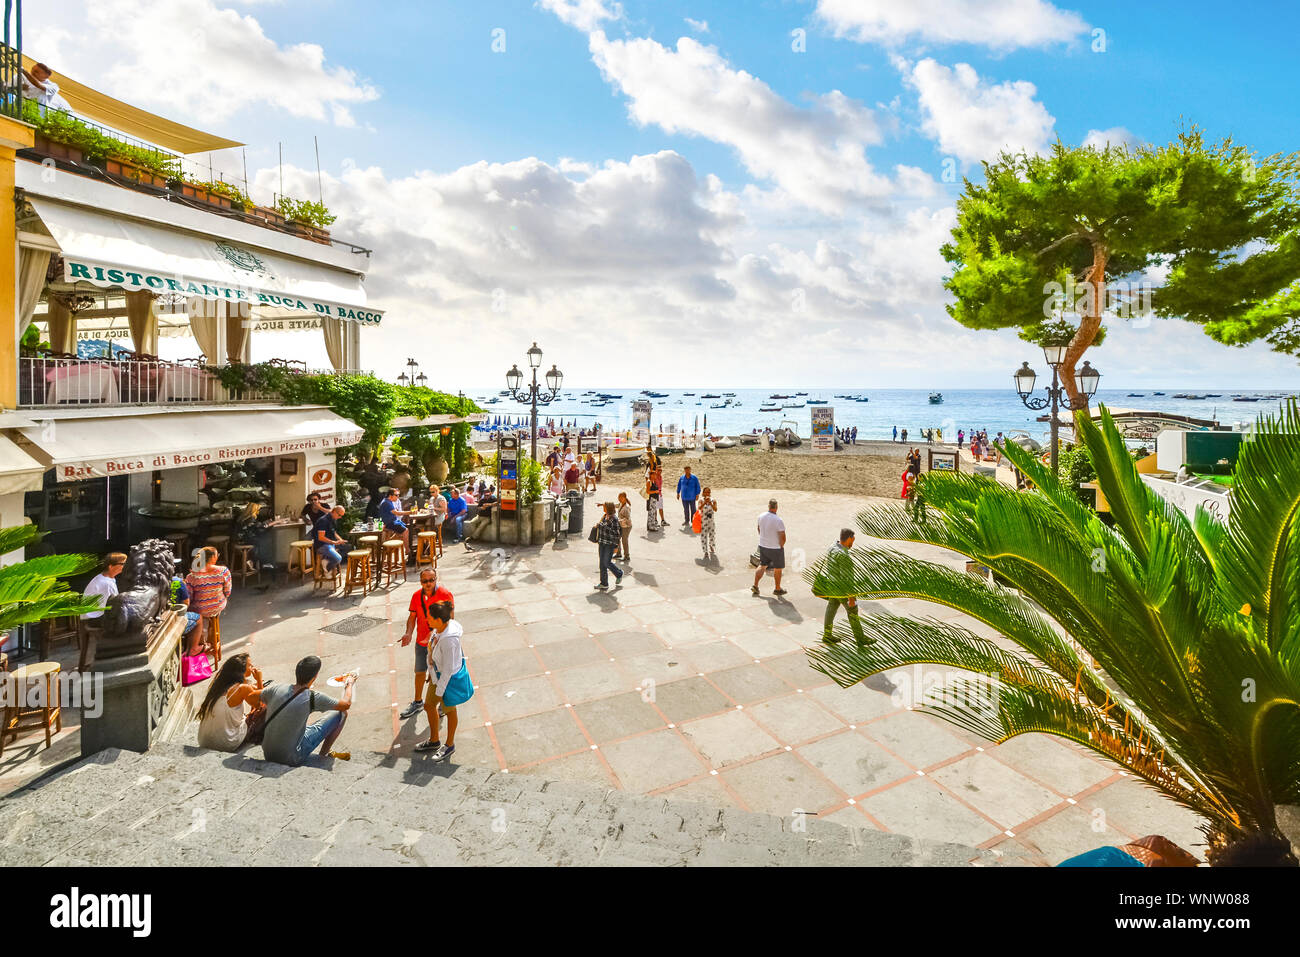 The sandy beach, cafes and shops at the coastal town of Positano Italy on the  Amalfi Coast of the Mediterranean Sea Stock Photo